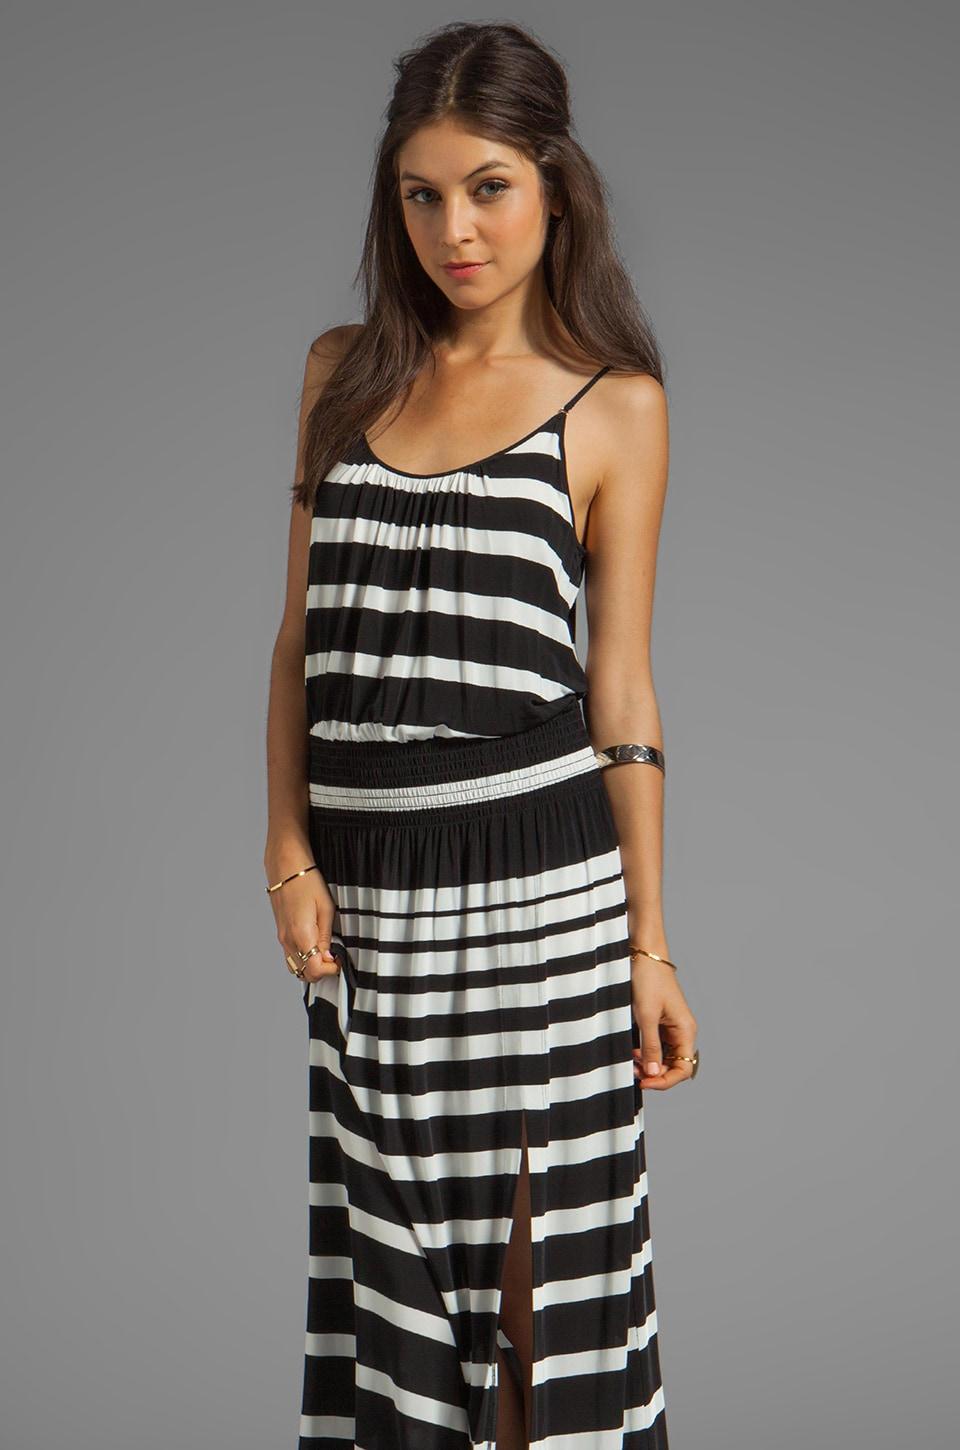 Tracy Reese Striped Jersey High Slit Maxi Slip in White Black